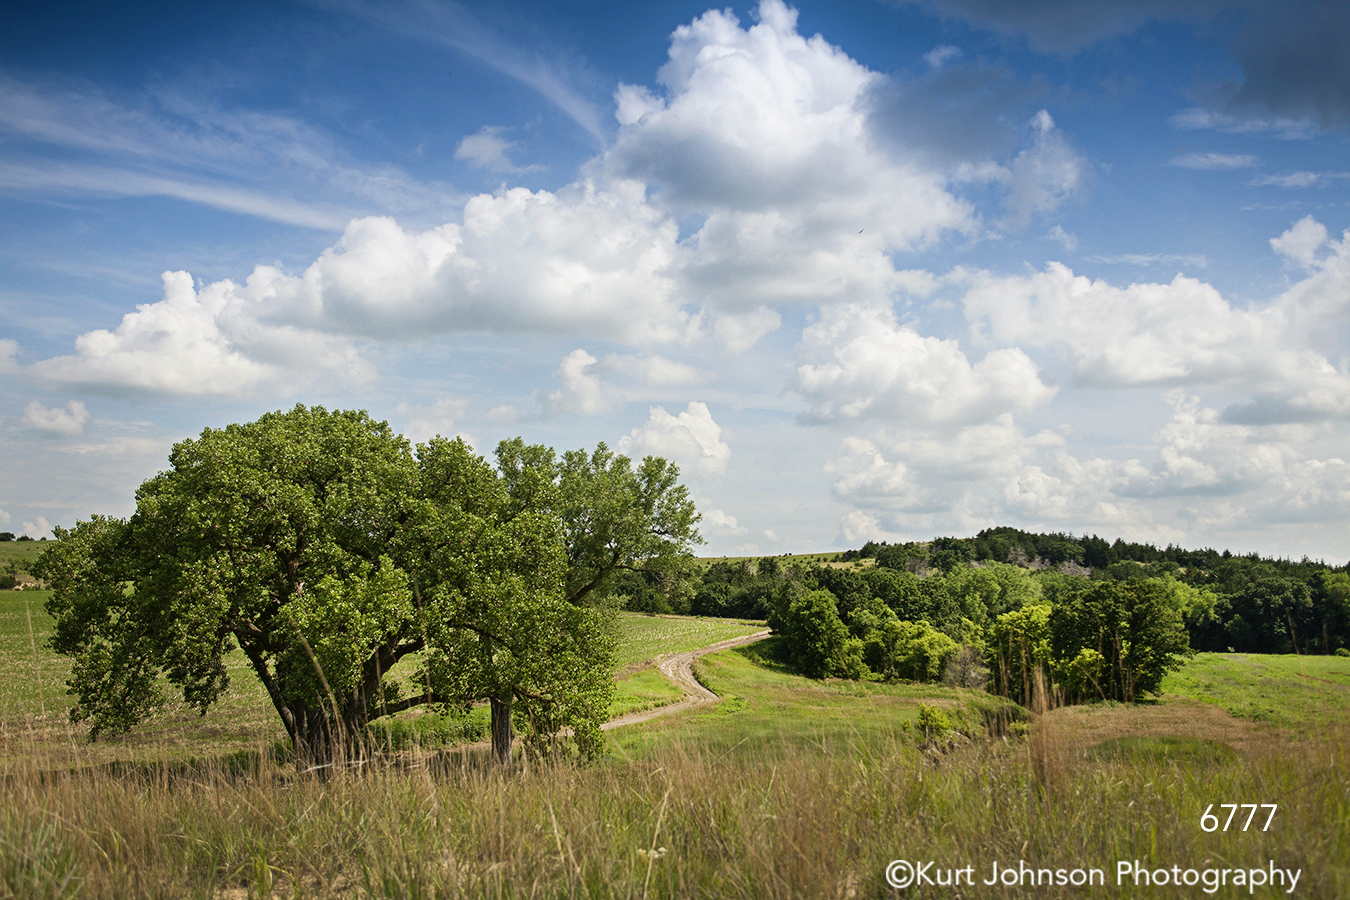 midwest landscape country trees path green grass dirt road blue sky clouds